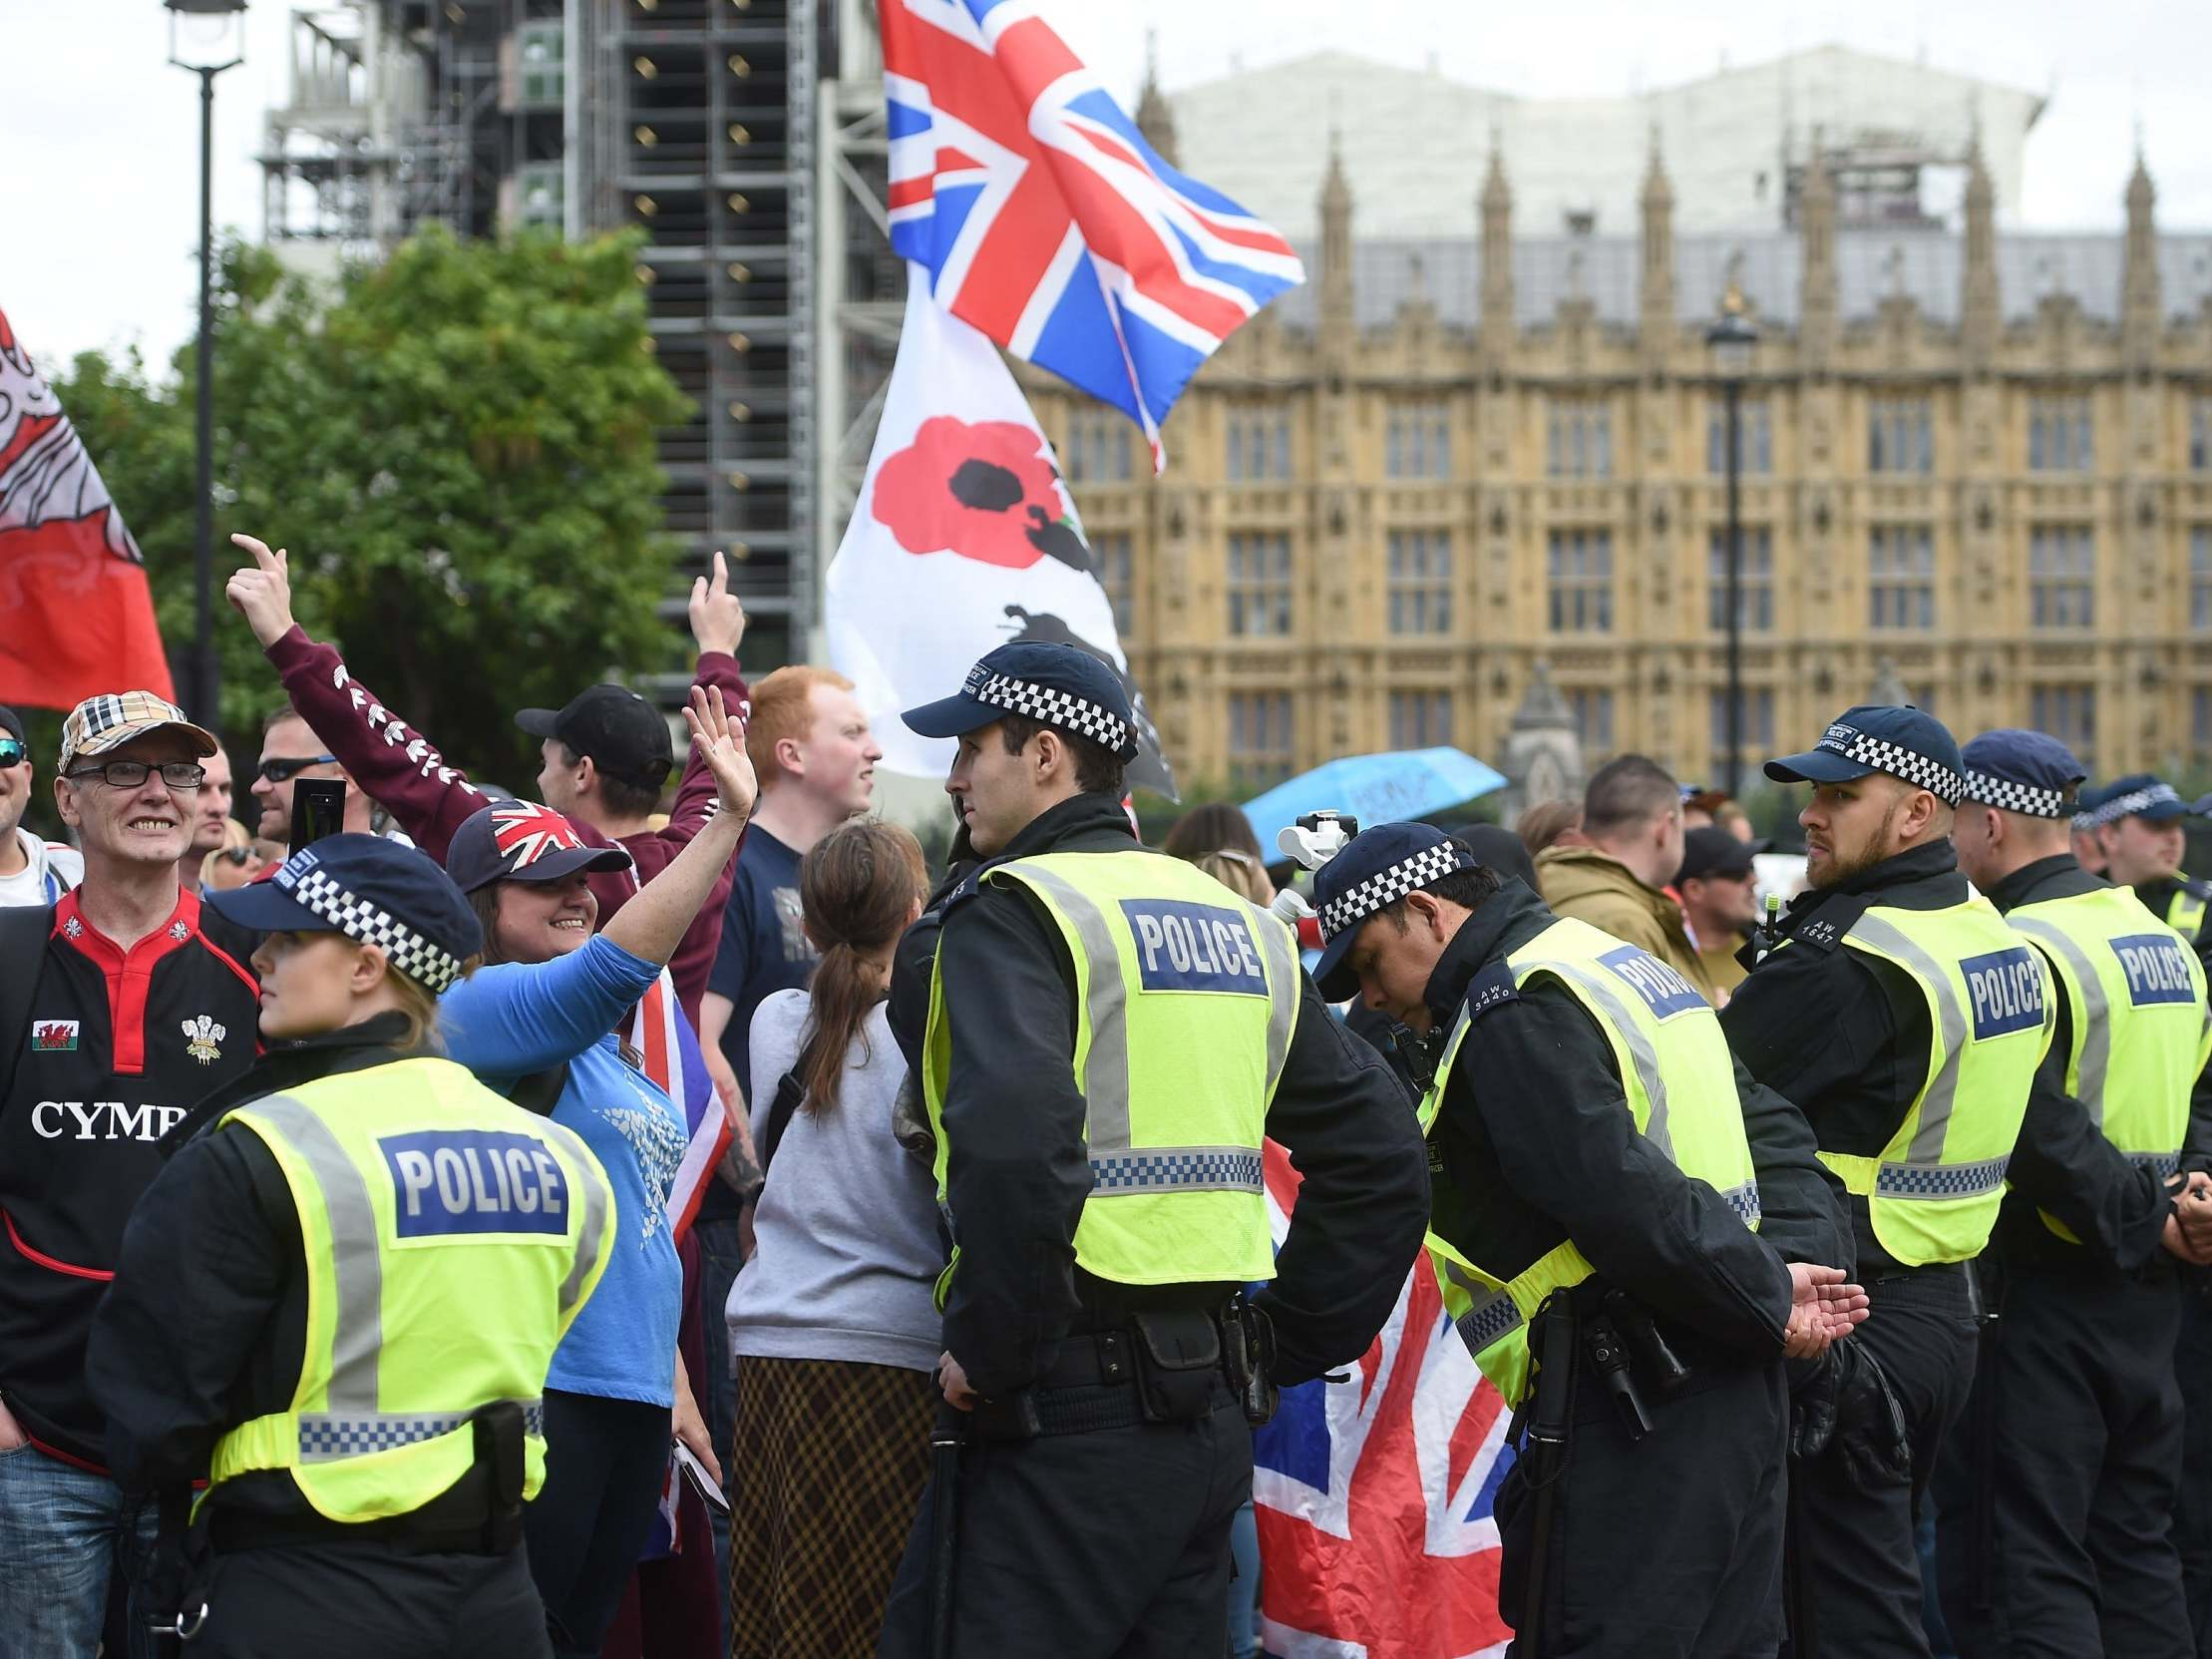 Pro and anti-Brexit protesters clash outside parliament